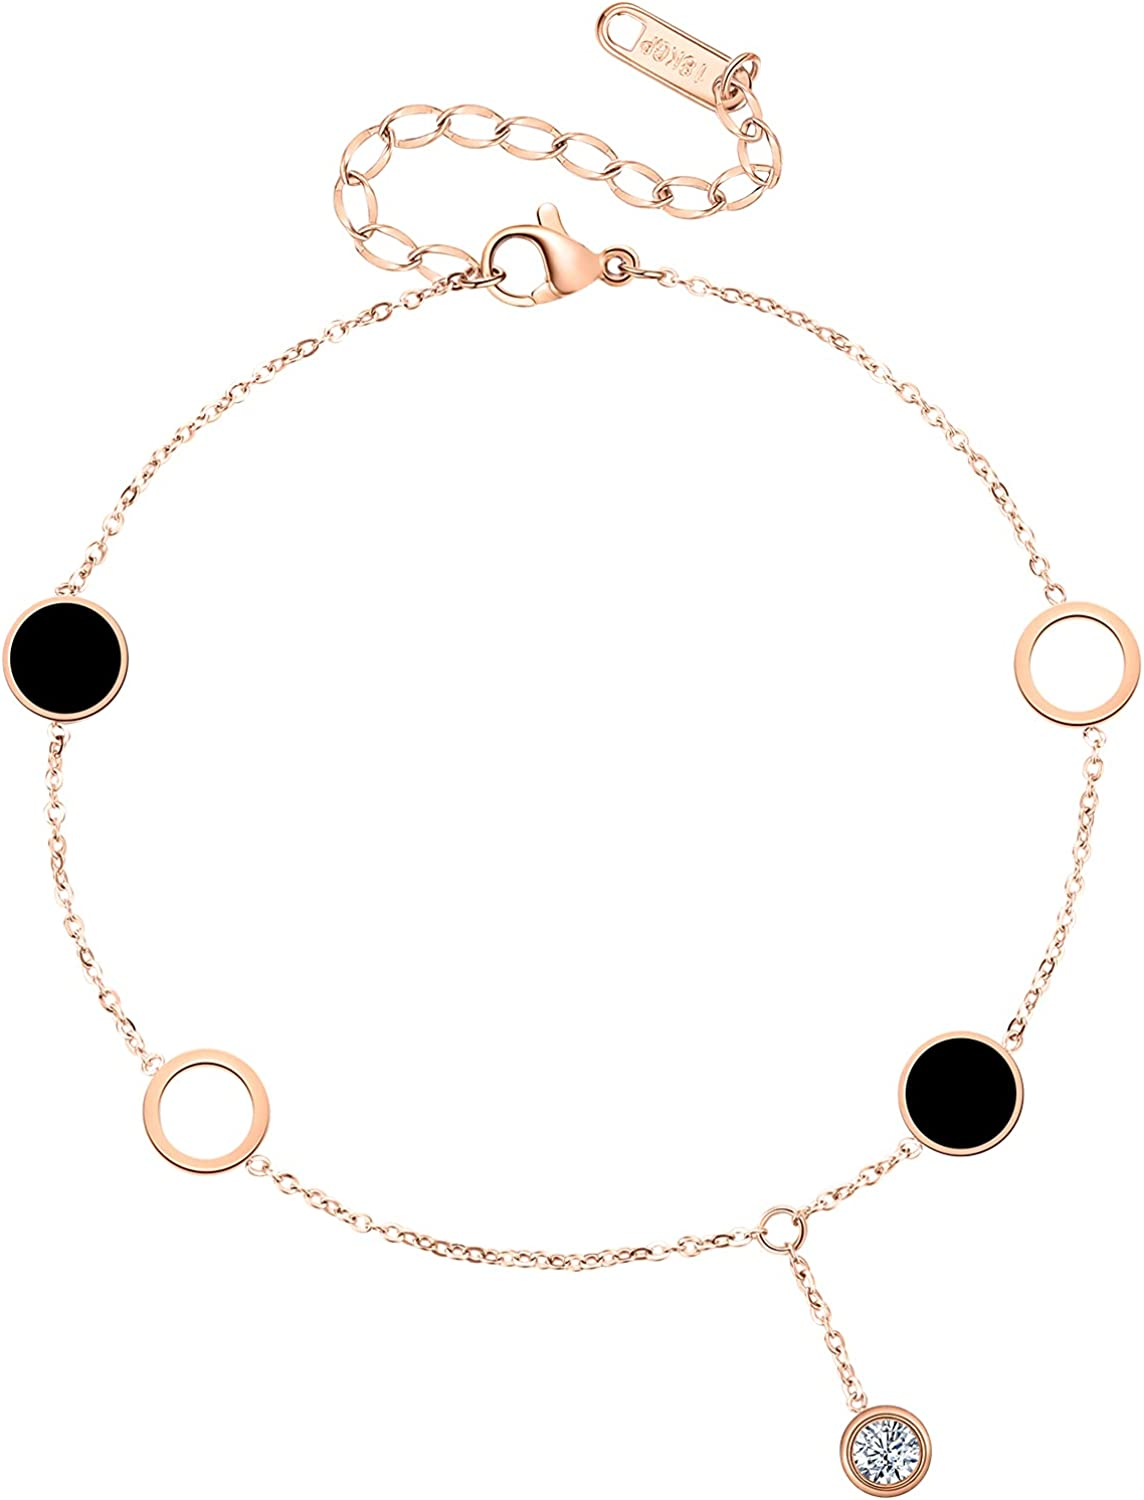 T400 Gold Rosegold Layered Rope Chain Link Bracelet with Crystal Cubic Zirconia Gift for Women Girls